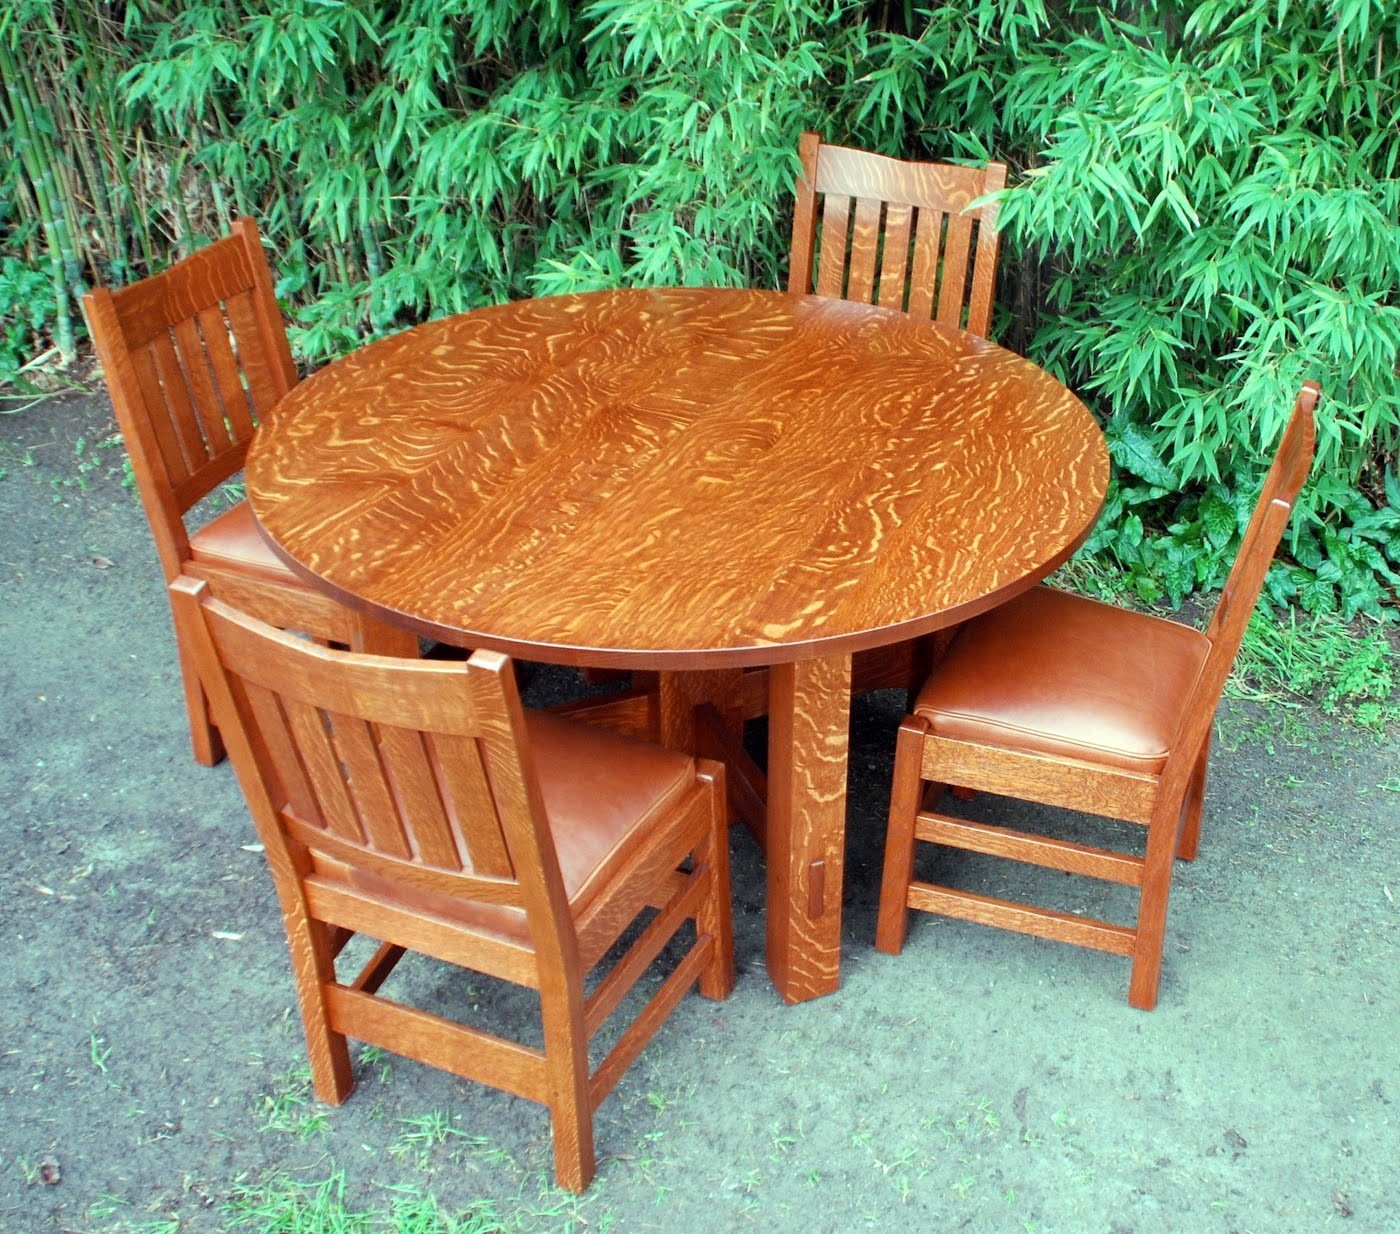 http://www.voorheescraftsman.com/images/i/275/1668/Gustav%20Stickley%20Oak%20Stretcher%20Base%20Dining%20Table%20Accurate%20Replica-1668.jpg